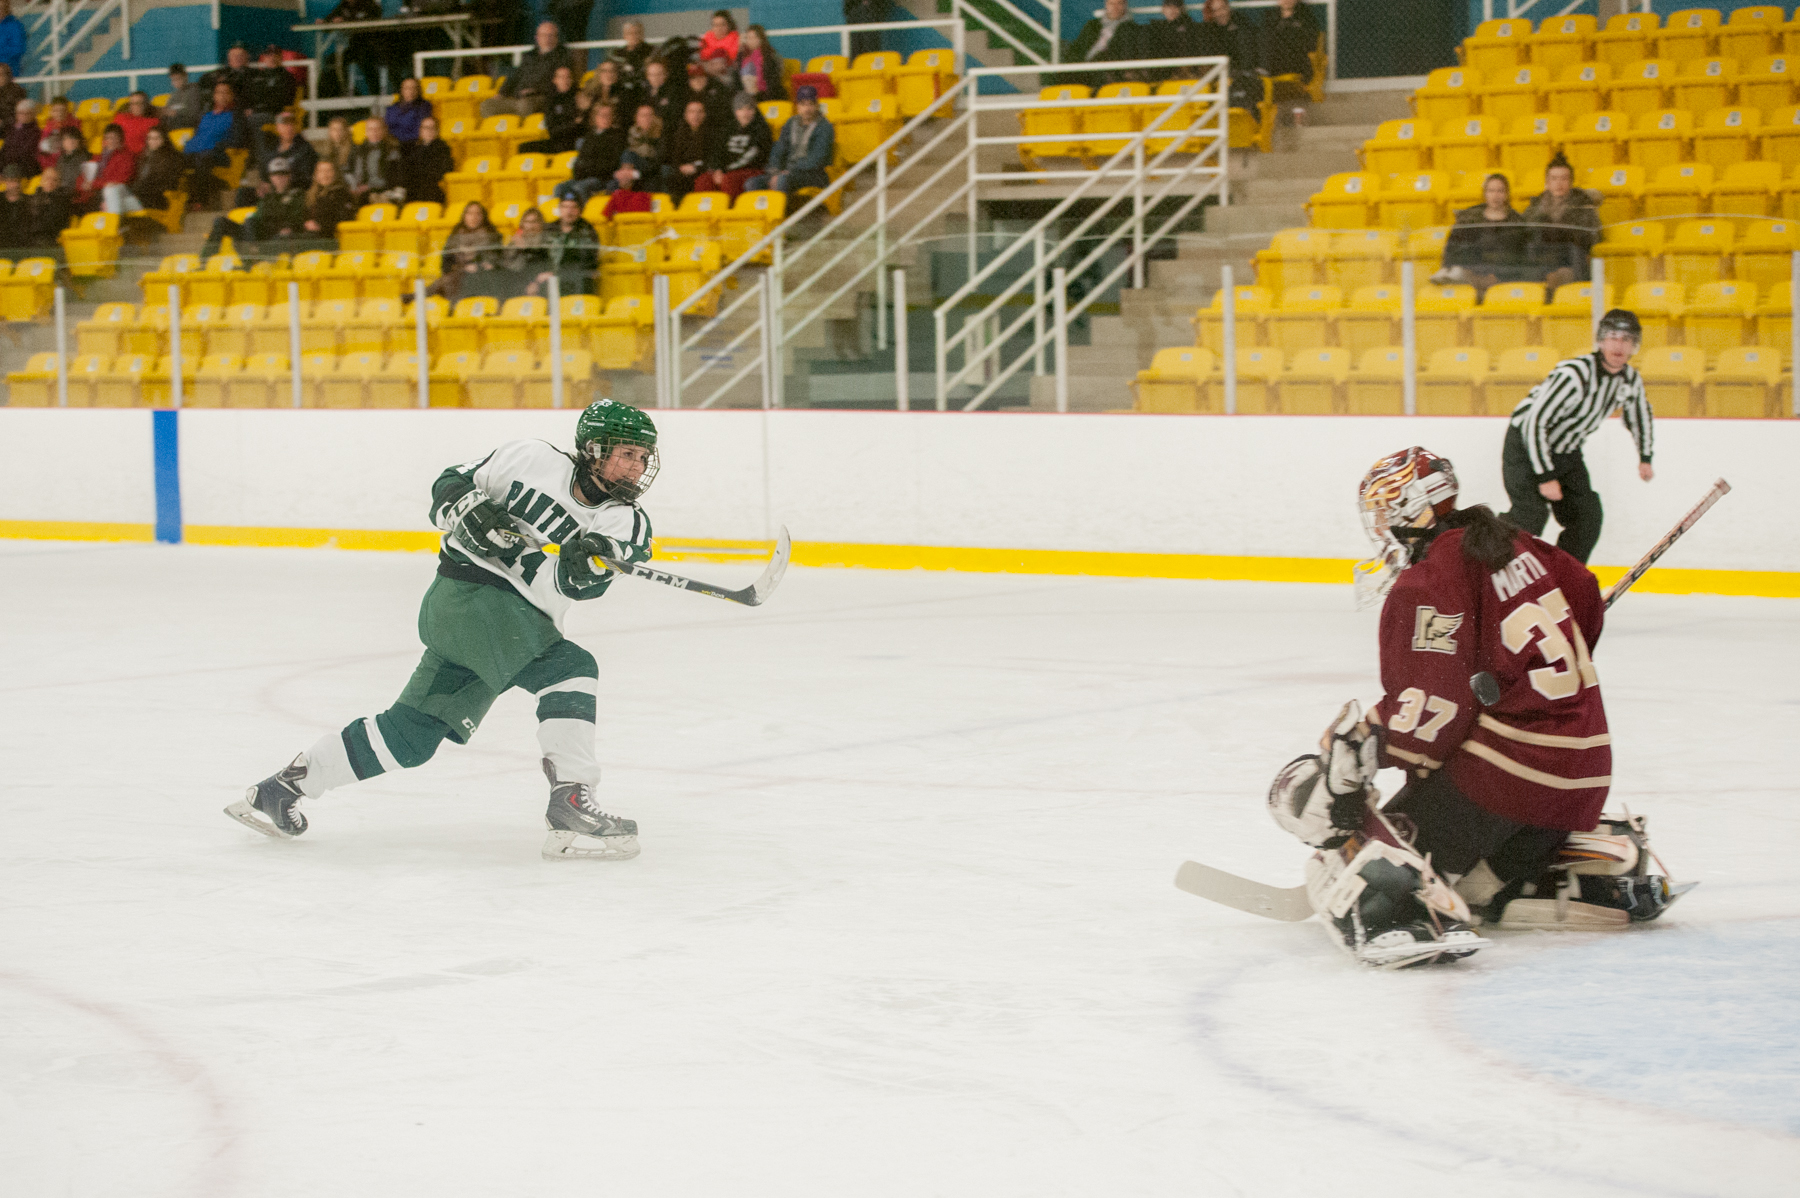 Mounties Lose 4-1 to Panthers